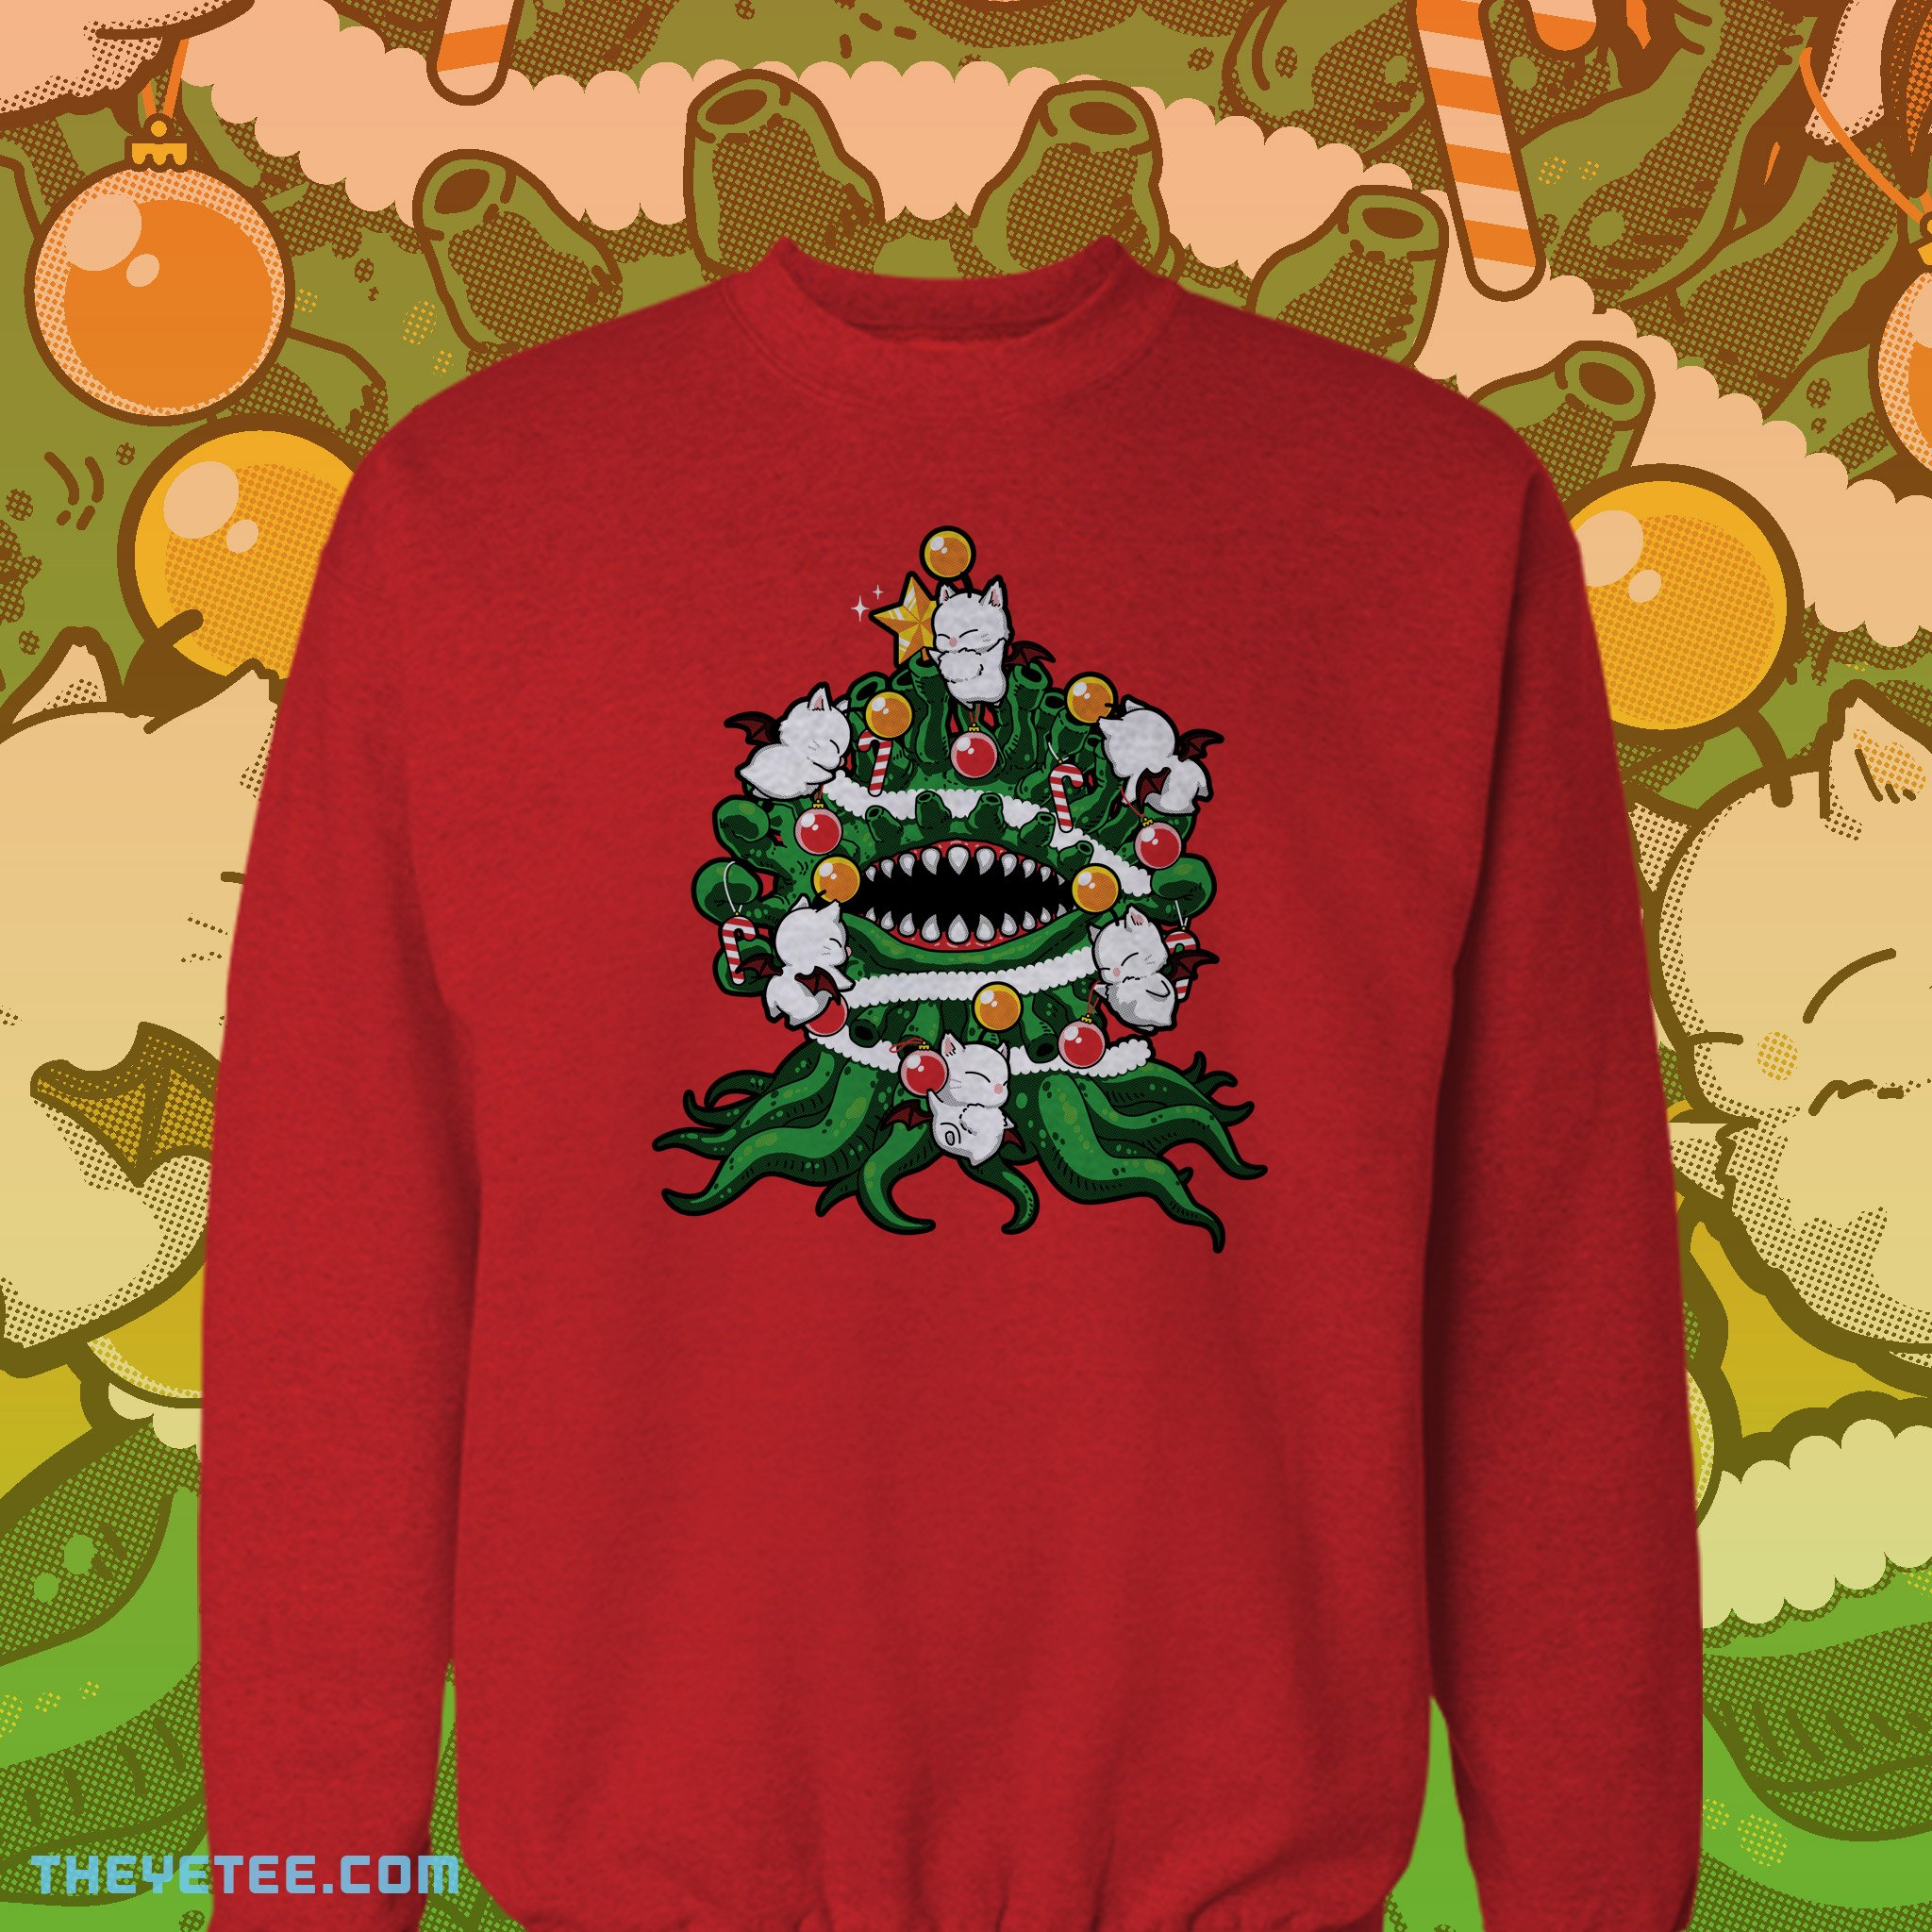 The Yetee: Bad X-Mas Tree